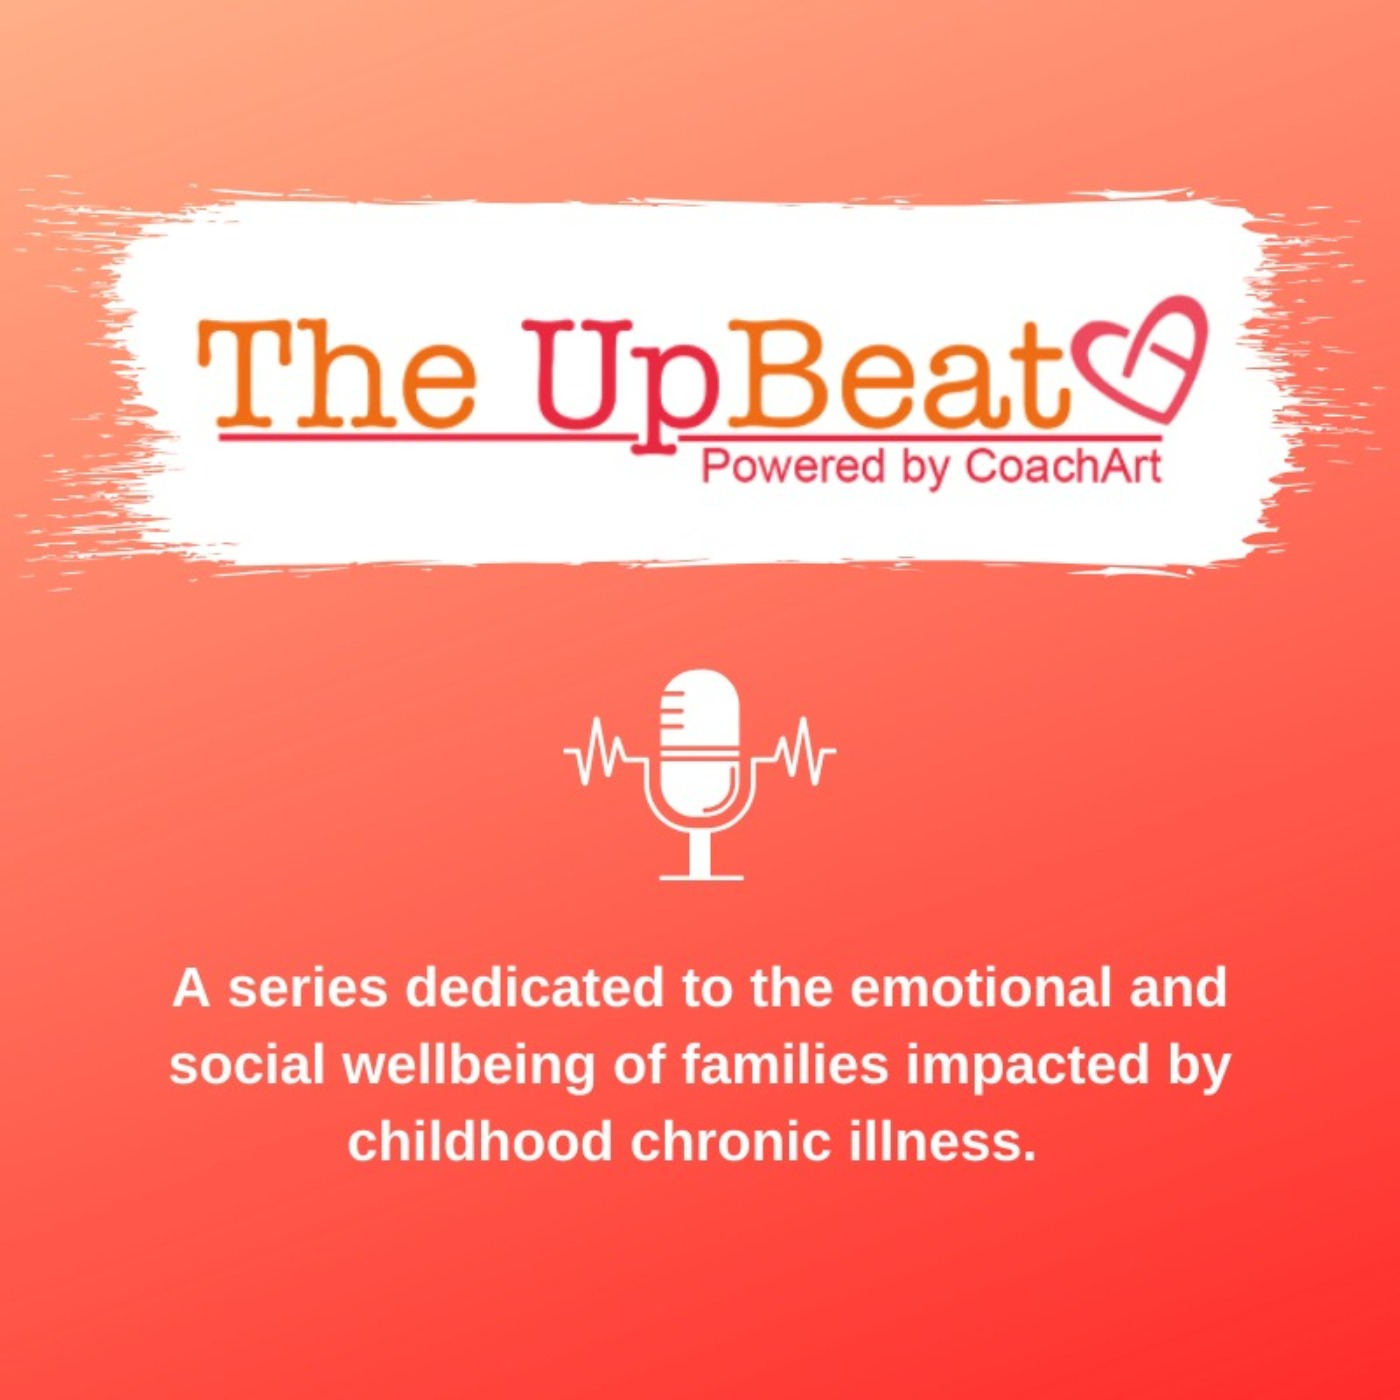 The UpBeat, Powered by CoachArt